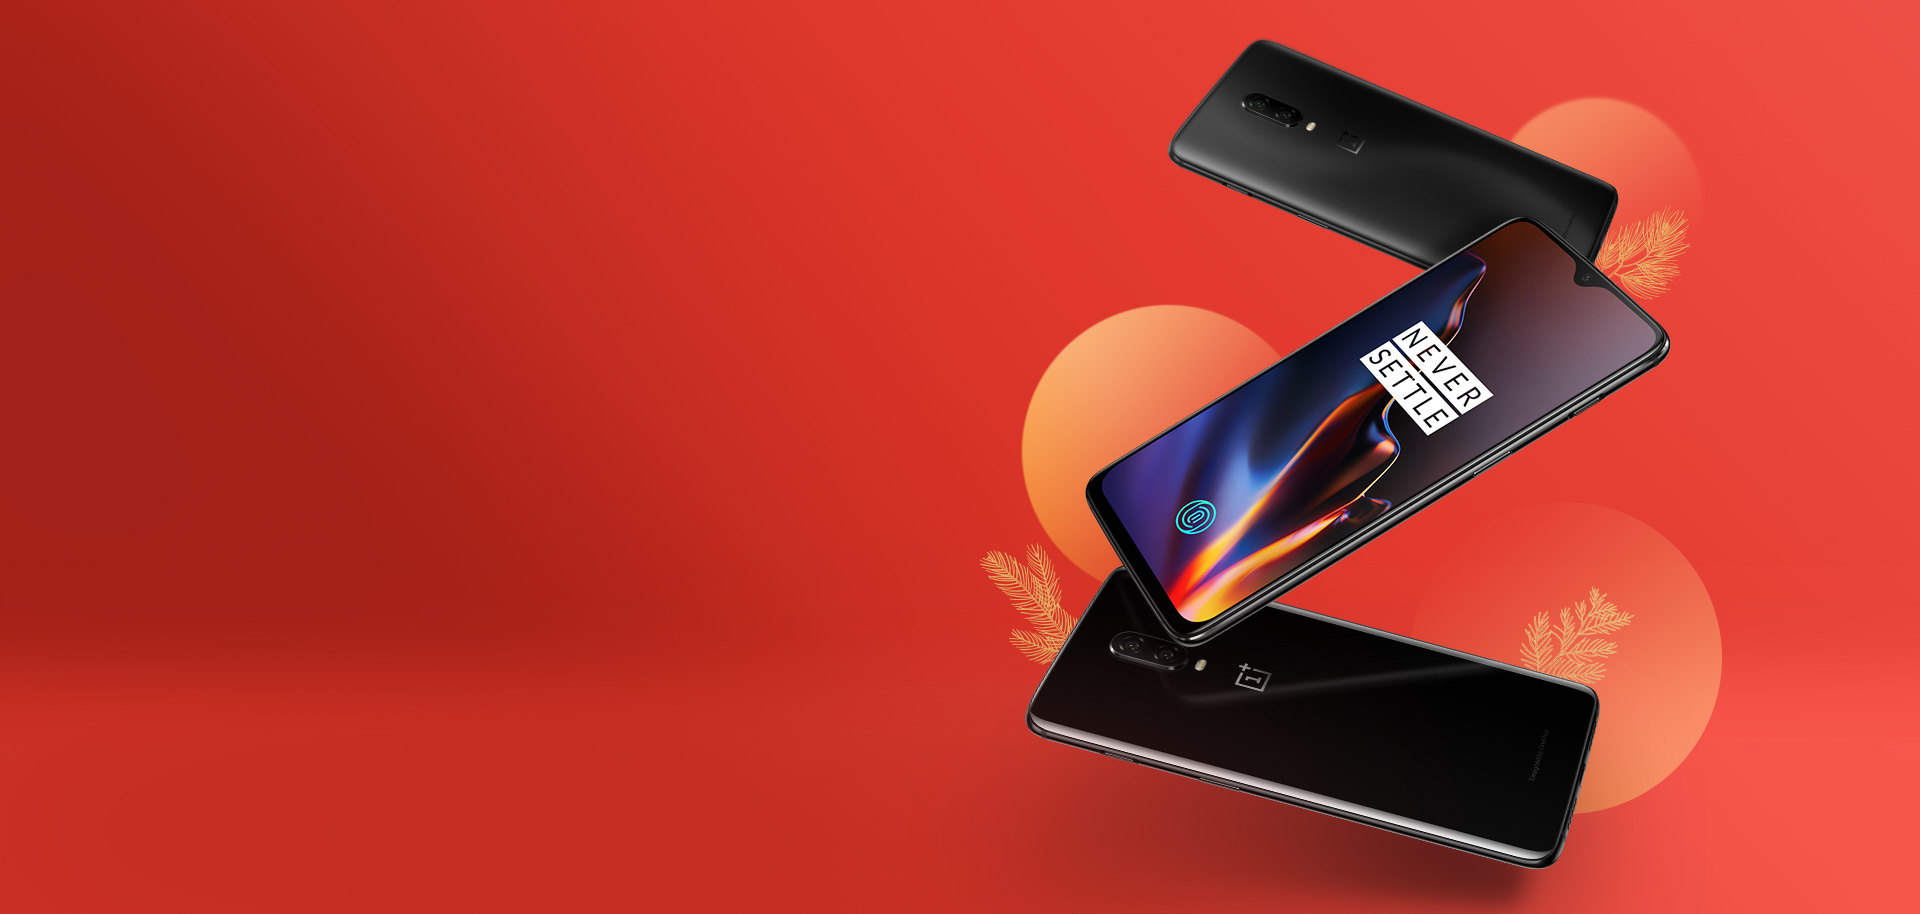 Unlock 2019 with the OnePlus 6T|Trade in and Save - OnePlus (Portugal)